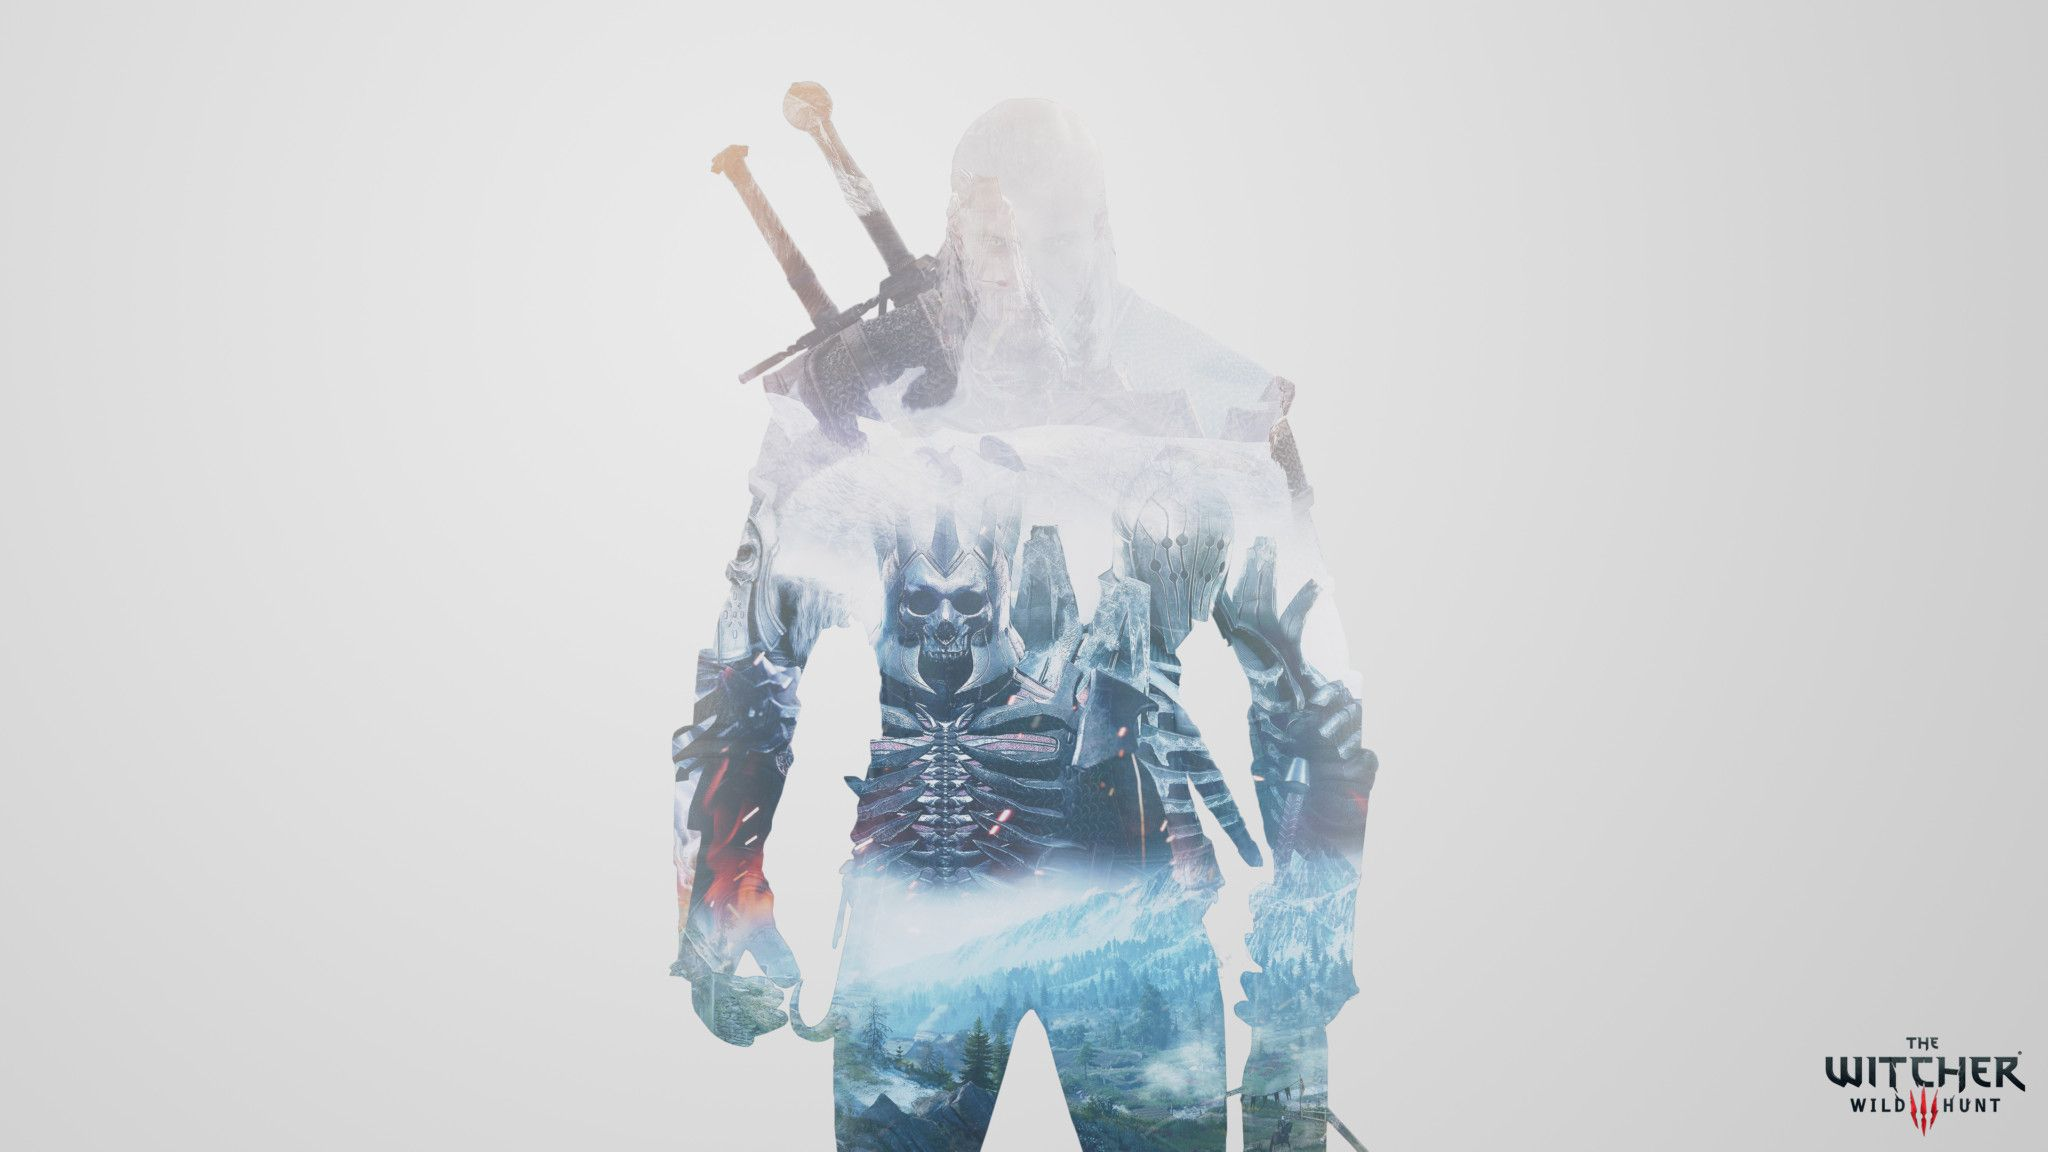 The Witcher 3 Games Wallpapers The Witcher The Witcher Wild Hunt The Witcher 3